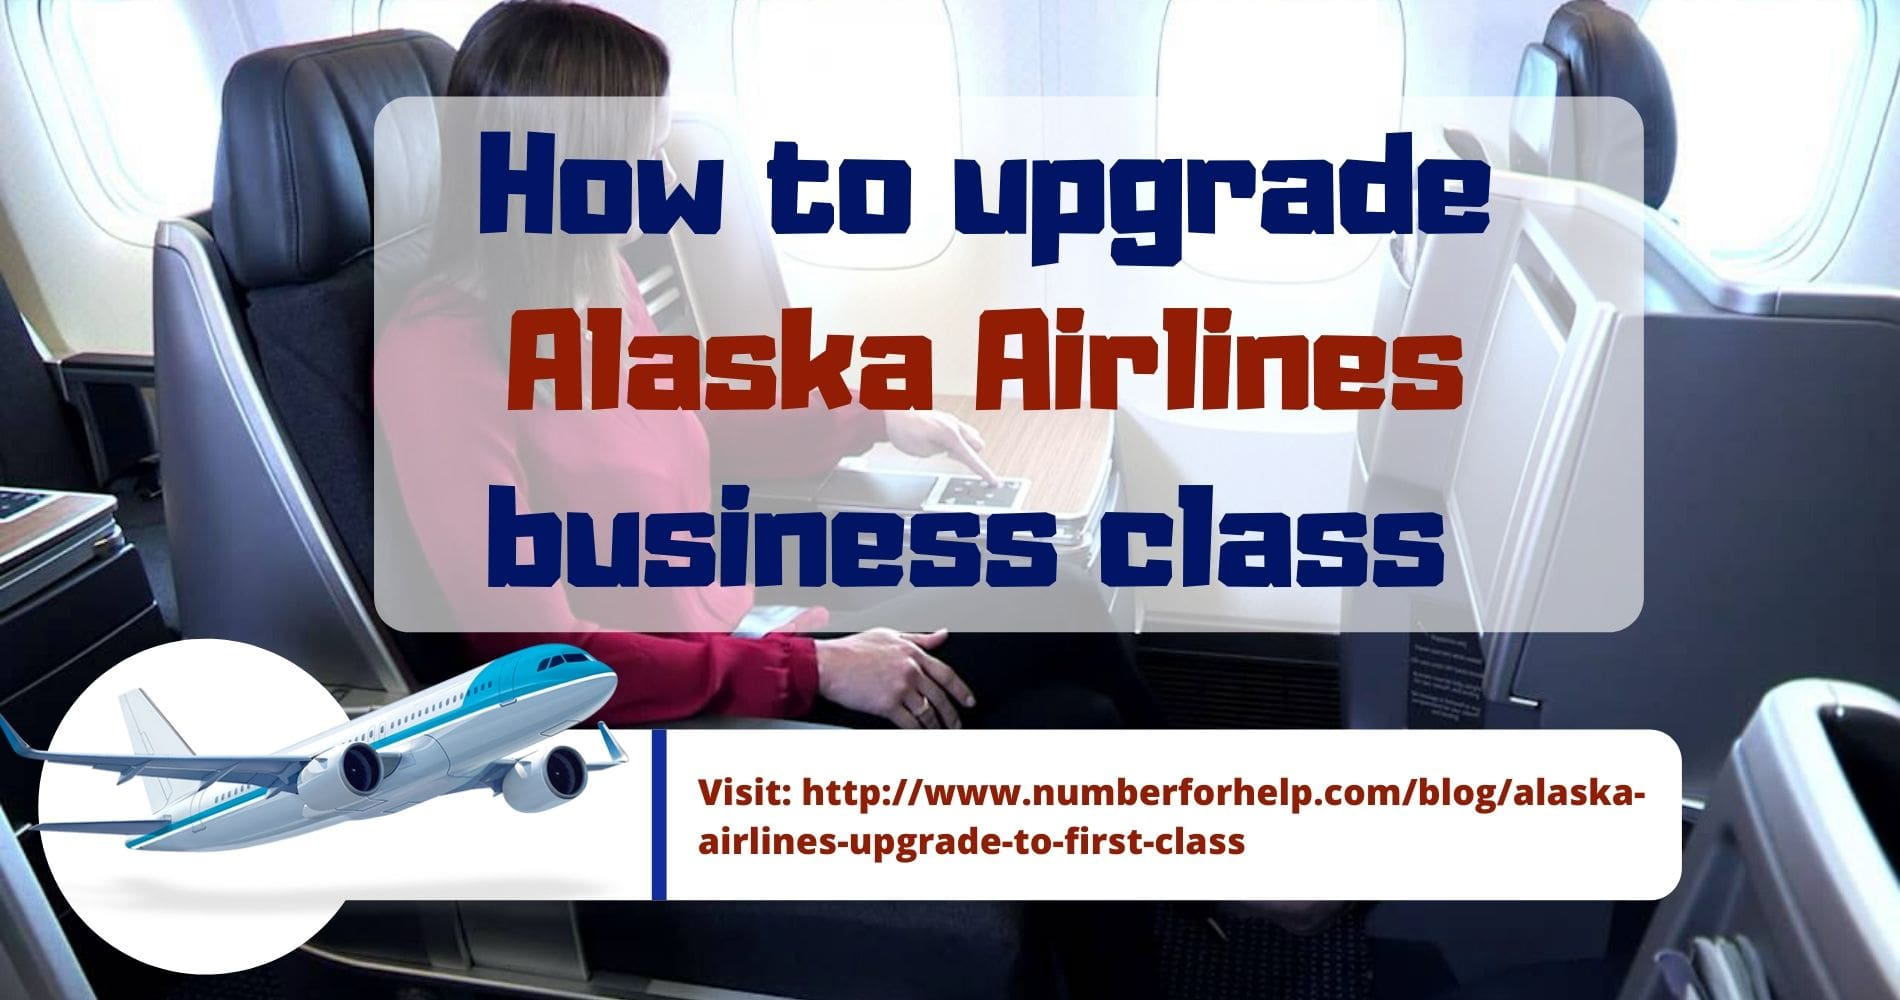 2019-12-12-12-13-15alaska airlines business class upgrade-min